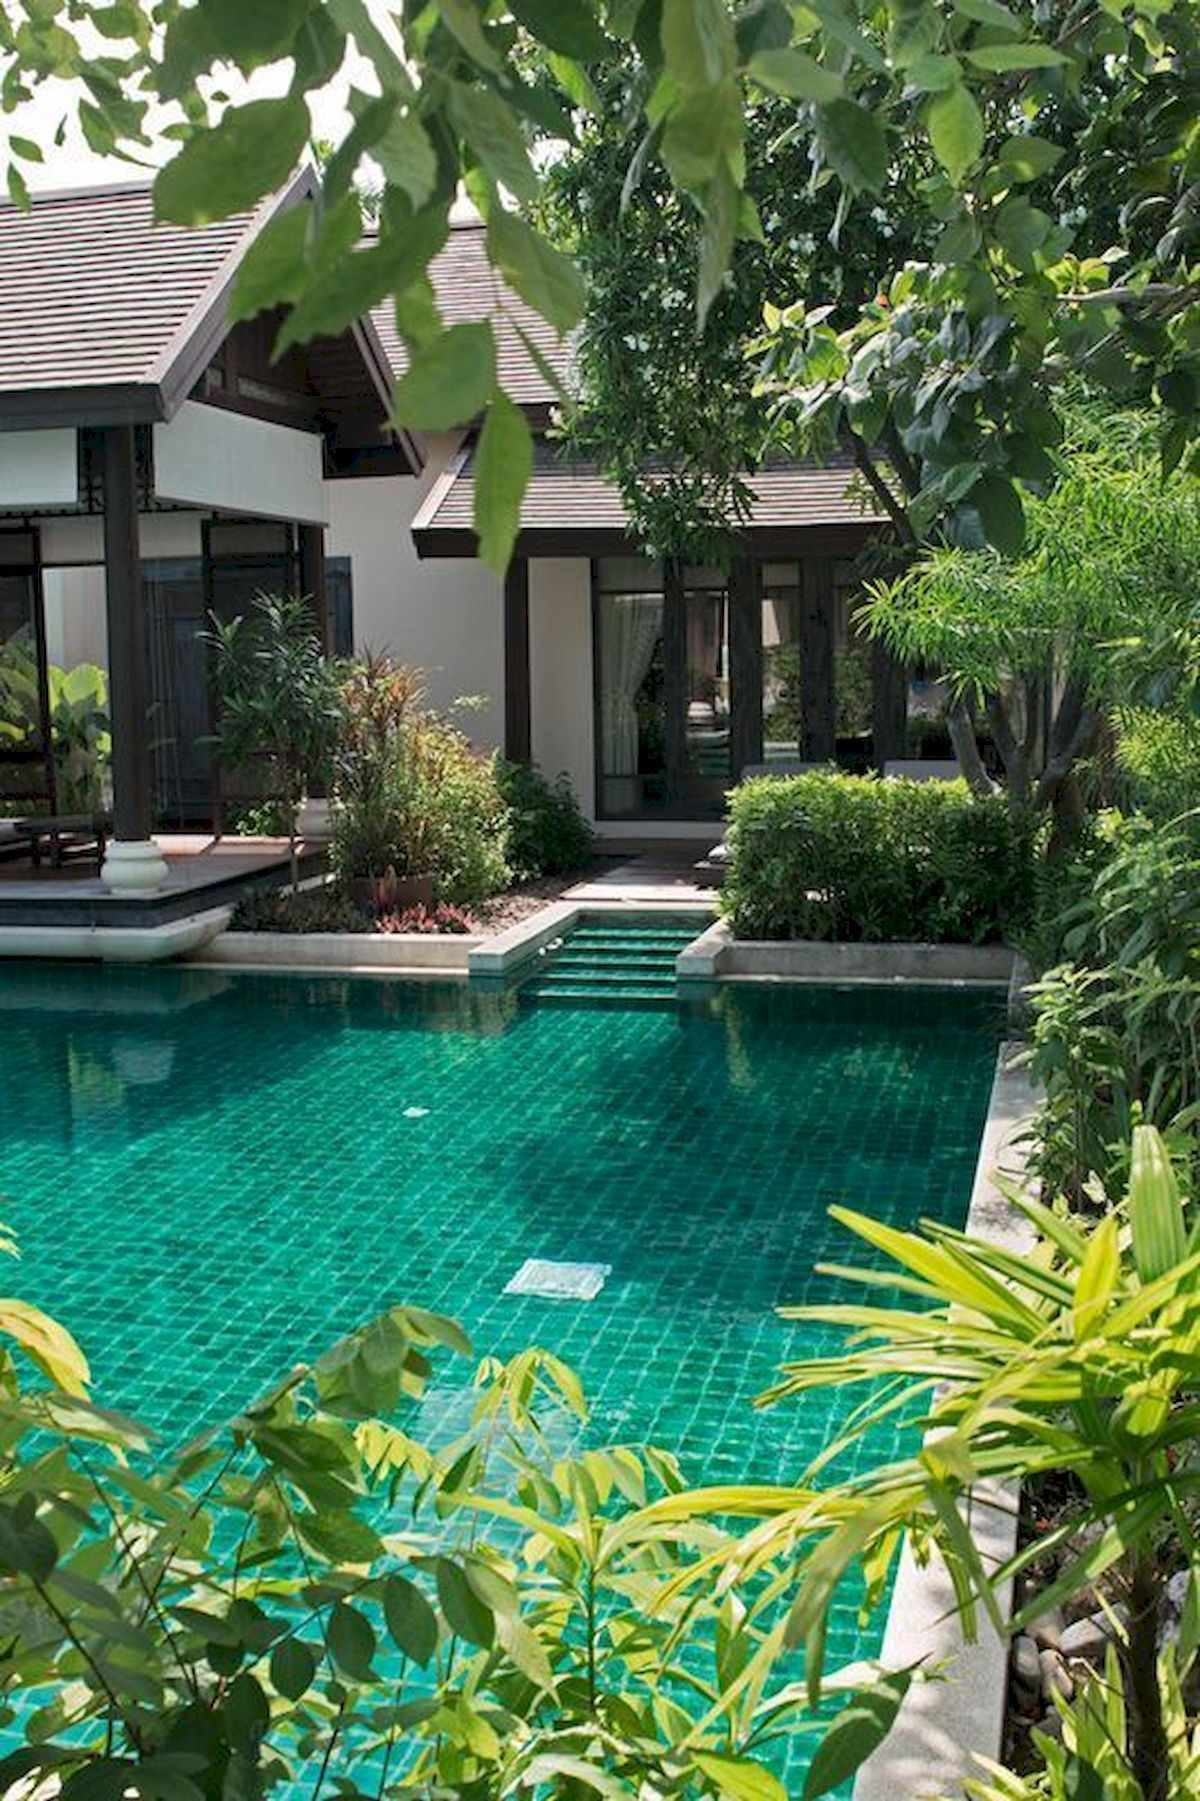 30 awesome backyard swimming pools design ideas in 2020 on attractive tropical landscaping ideas id=71880